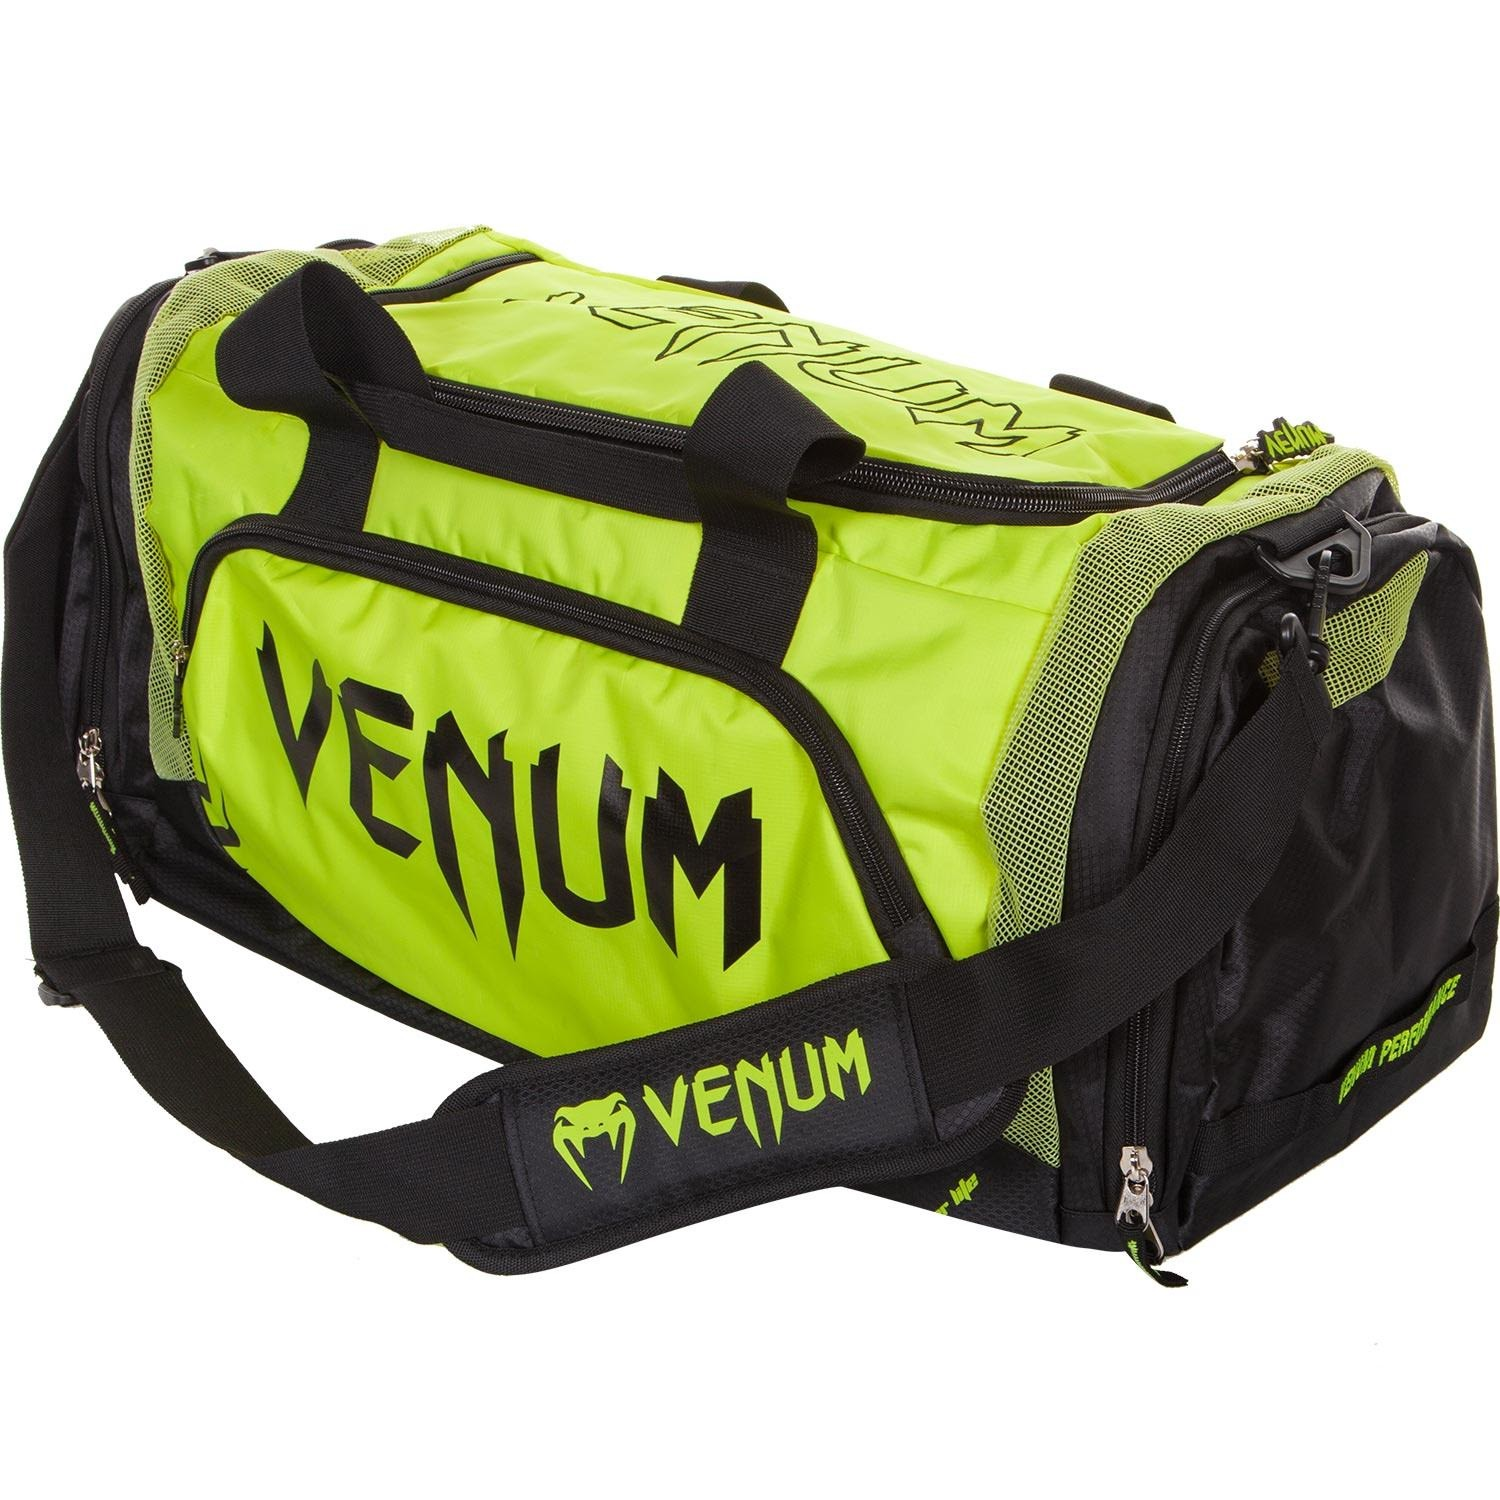 Venum Trainer Lite Sport Bag - Yellow Yellow - Venum